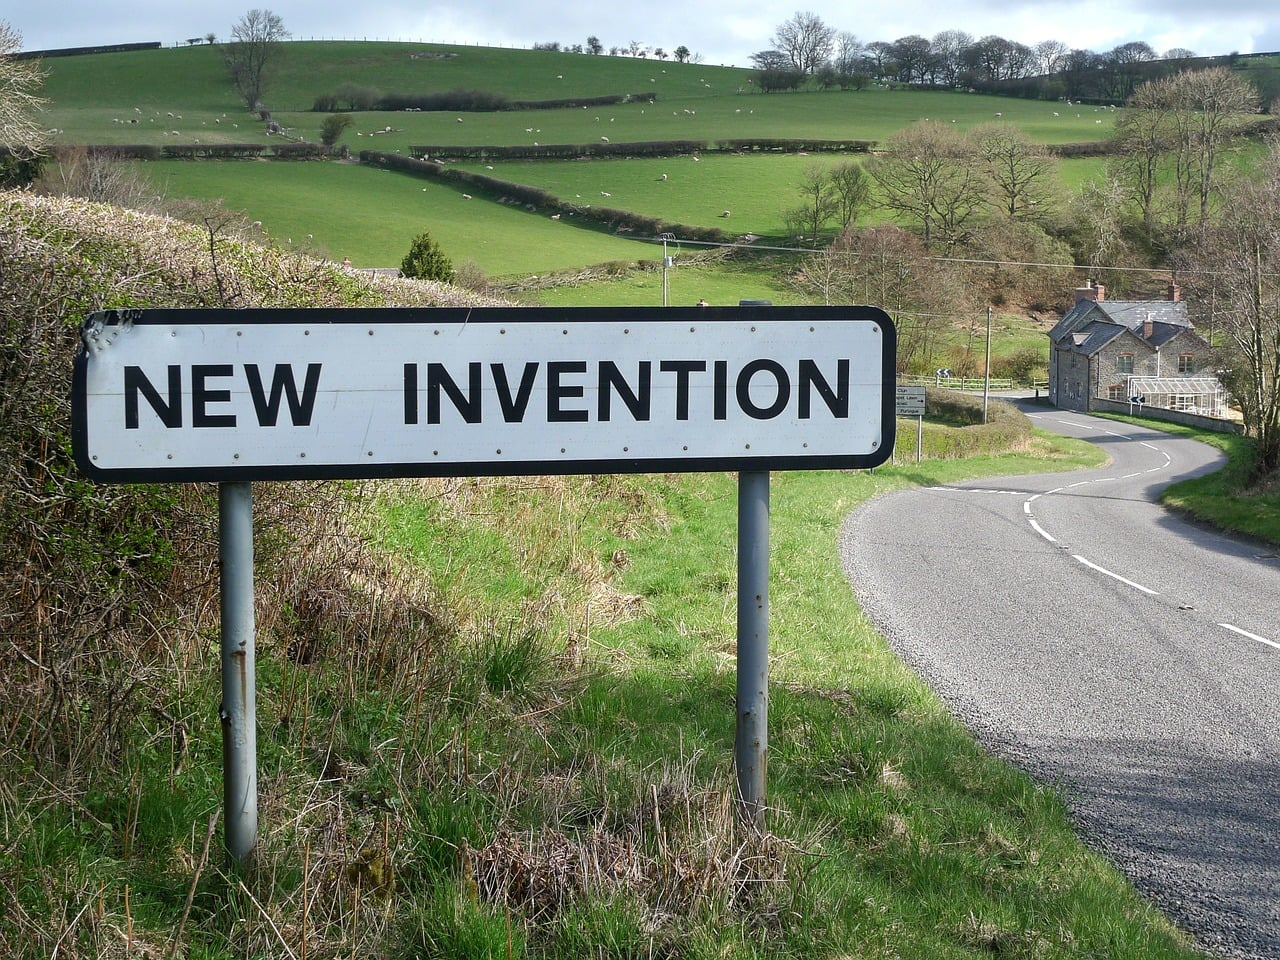 Being Efficient with Tax Payer Money Can Inhibit Innovation